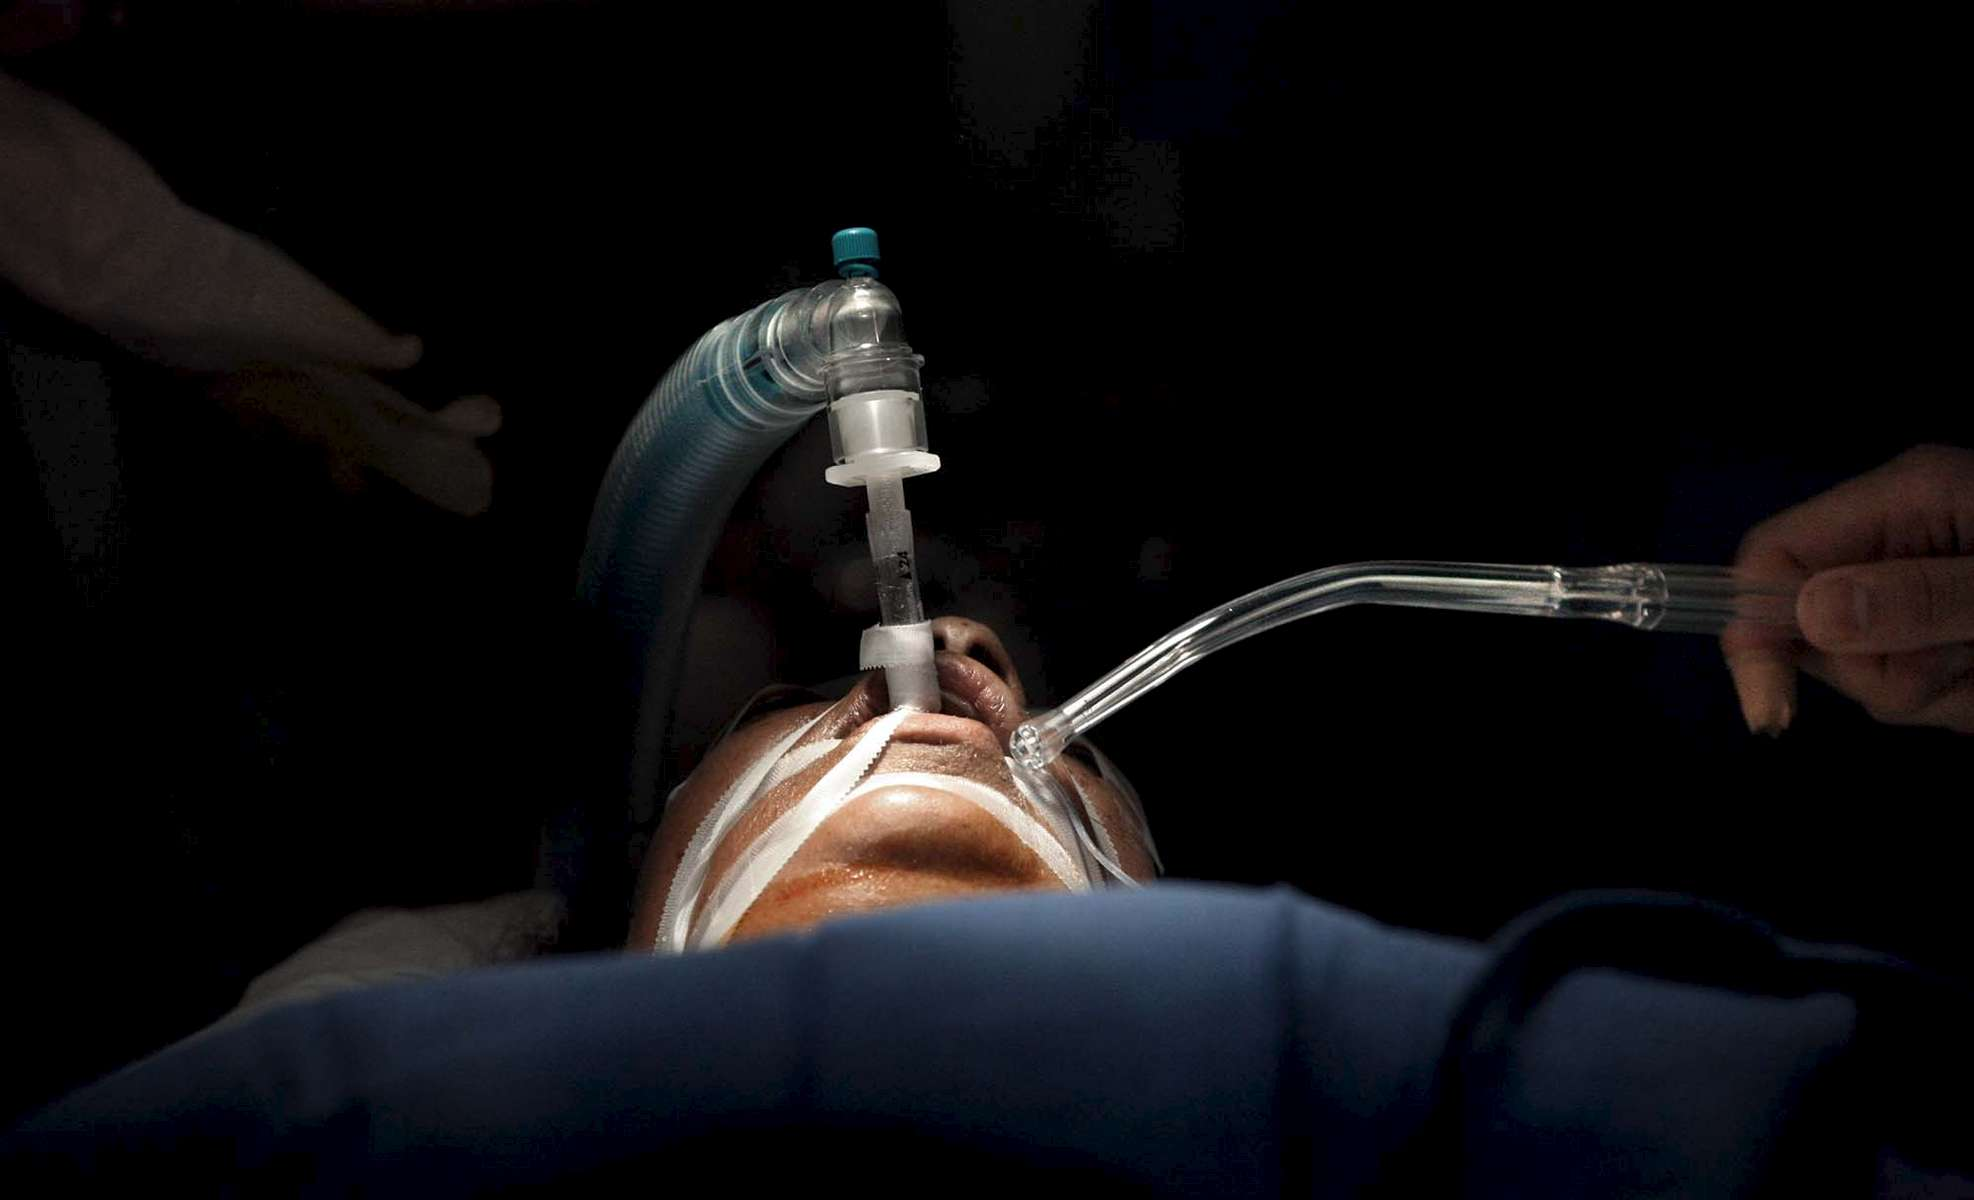 A patient lies in sedation while undergoing a hysterectomy.